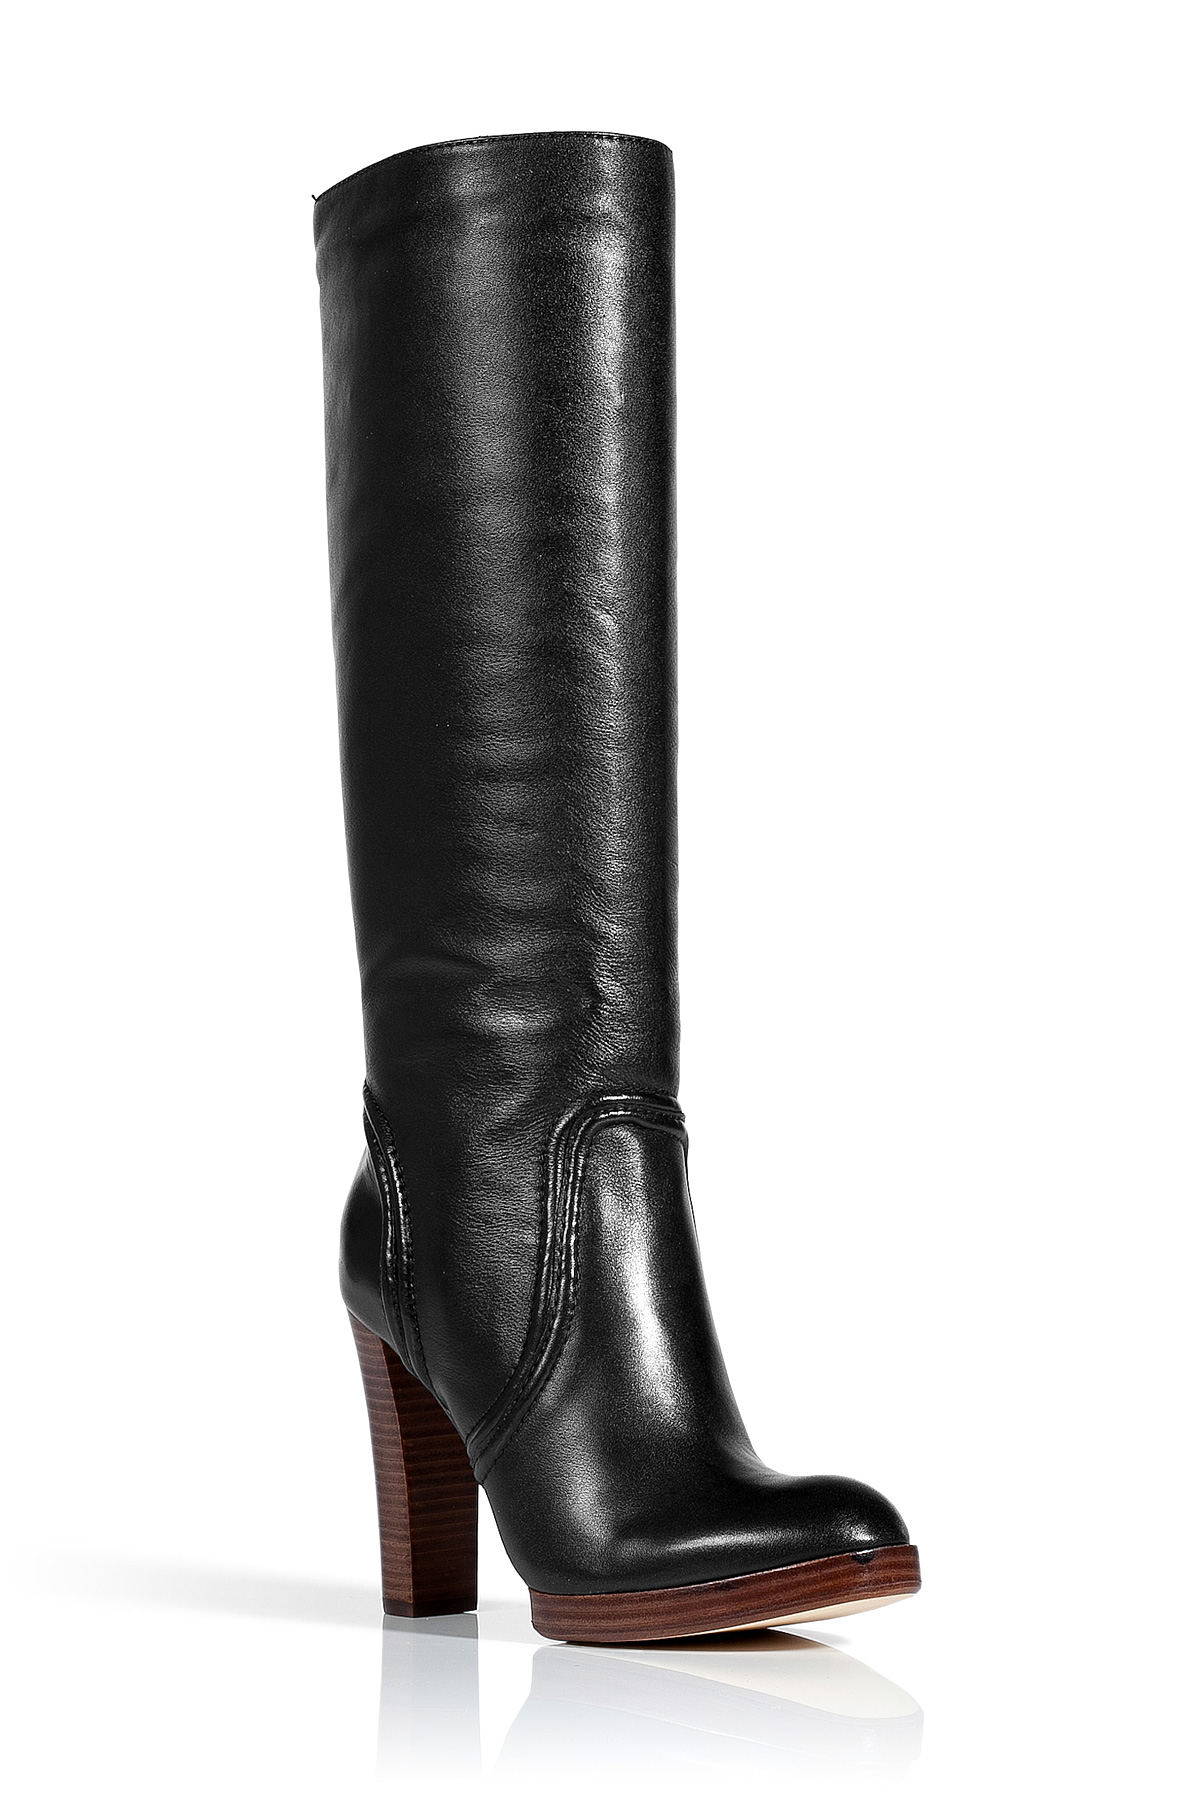 kors by michael kors black leather stacked heel boots in